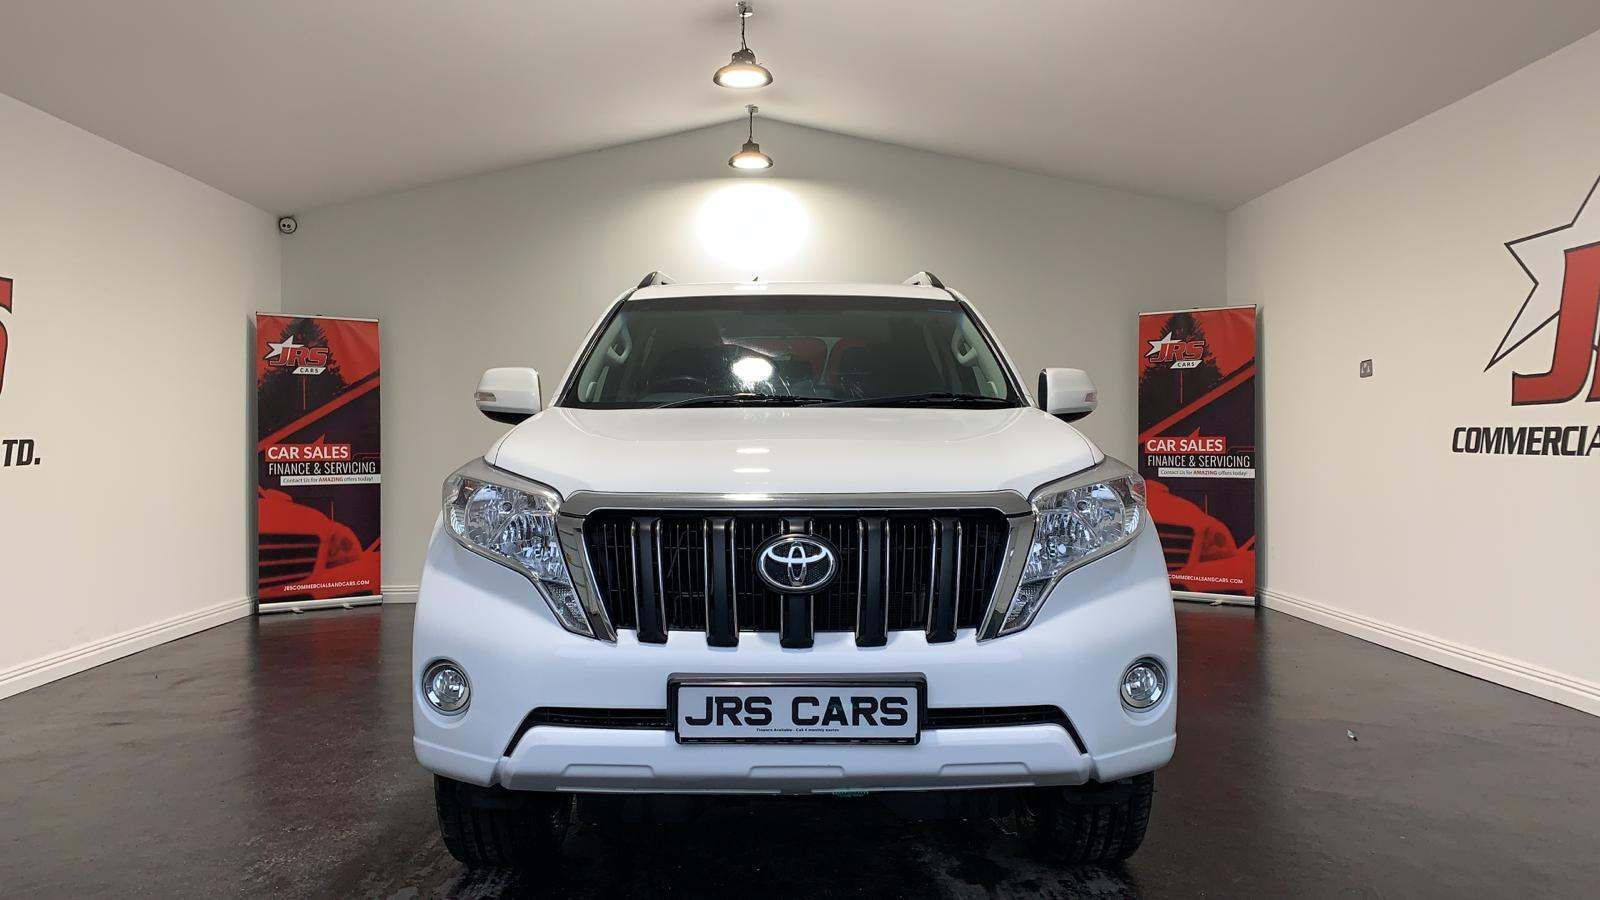 2014 TOYOTA Land Cruiser 3.0 D-4D Active  (5 Seats) Diesel Manual *SWB- Rev Cam – Tow Bar* – J R S Commercials And Cars Dungannon full